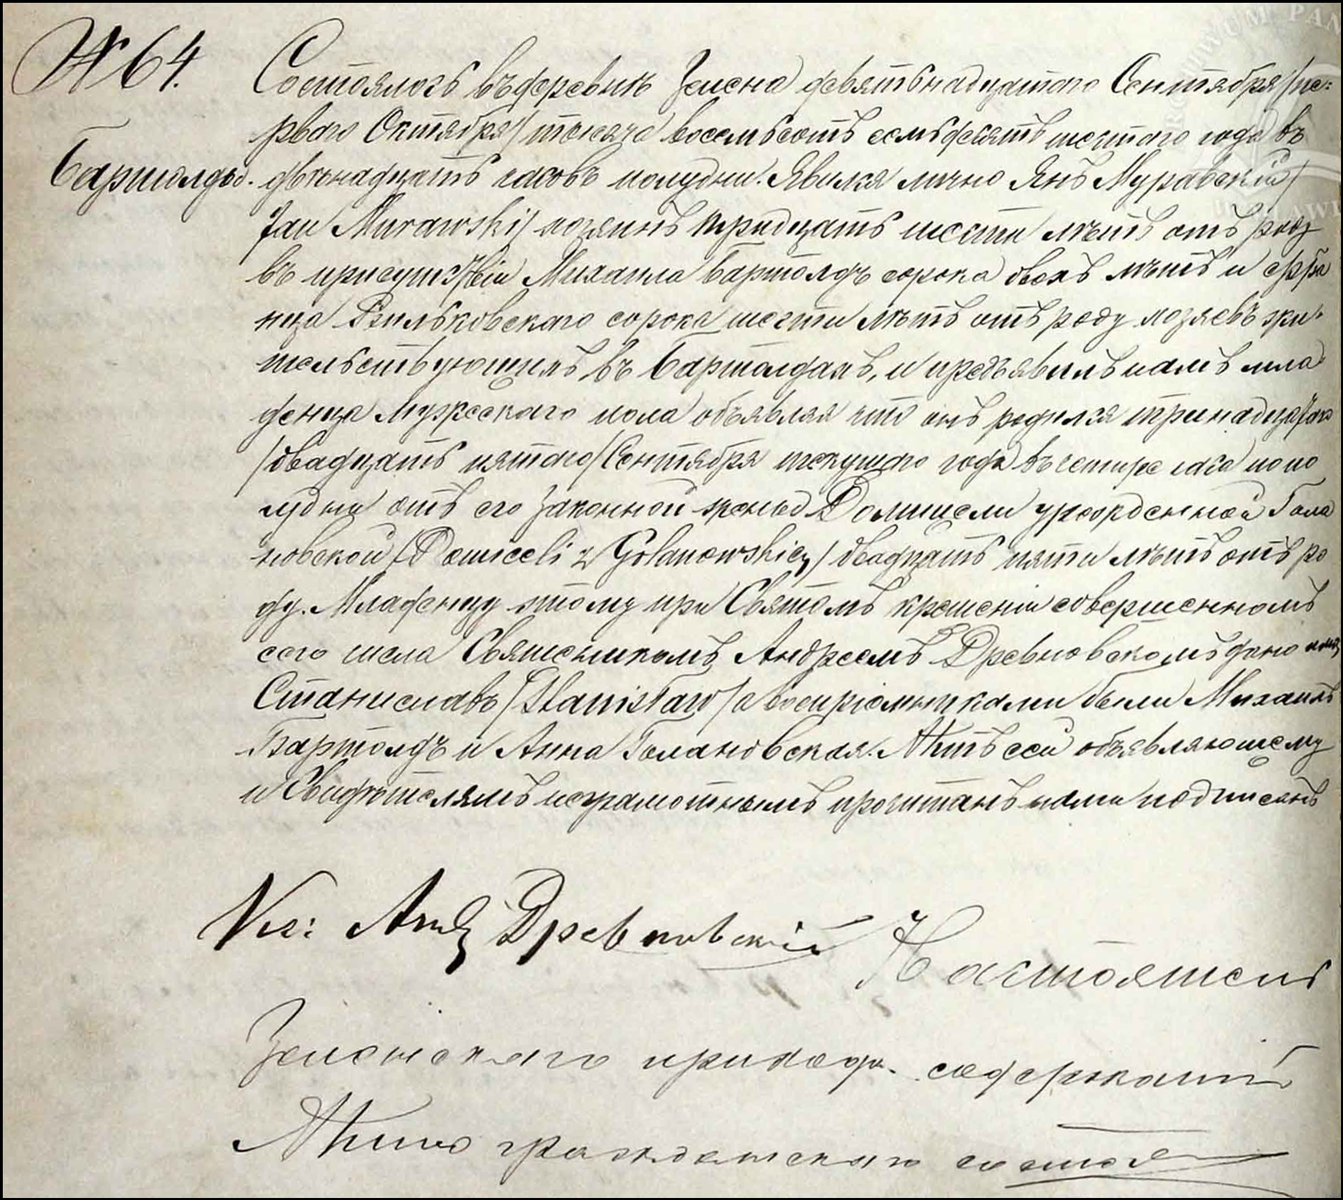 Birth and Baptismal Record for Stanisław Morawski – 1876